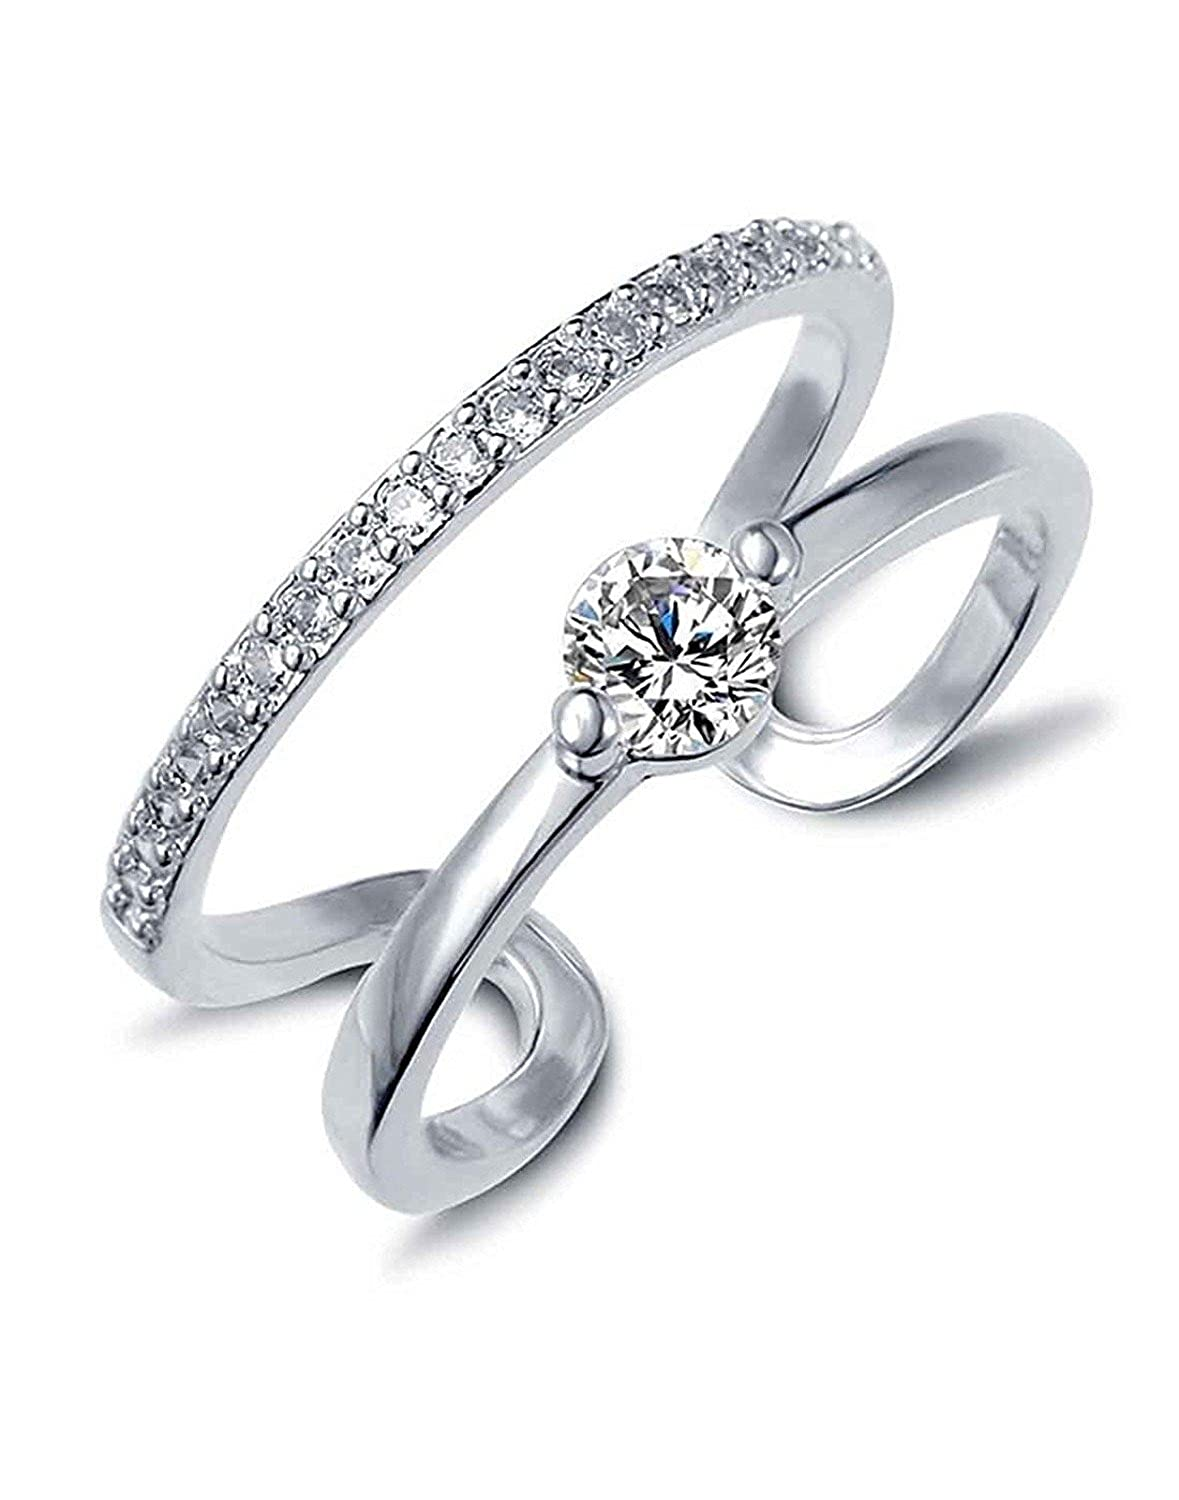 Rings- Buy Gold, Silver, Swarovski Rings Online at Best Prices in ...